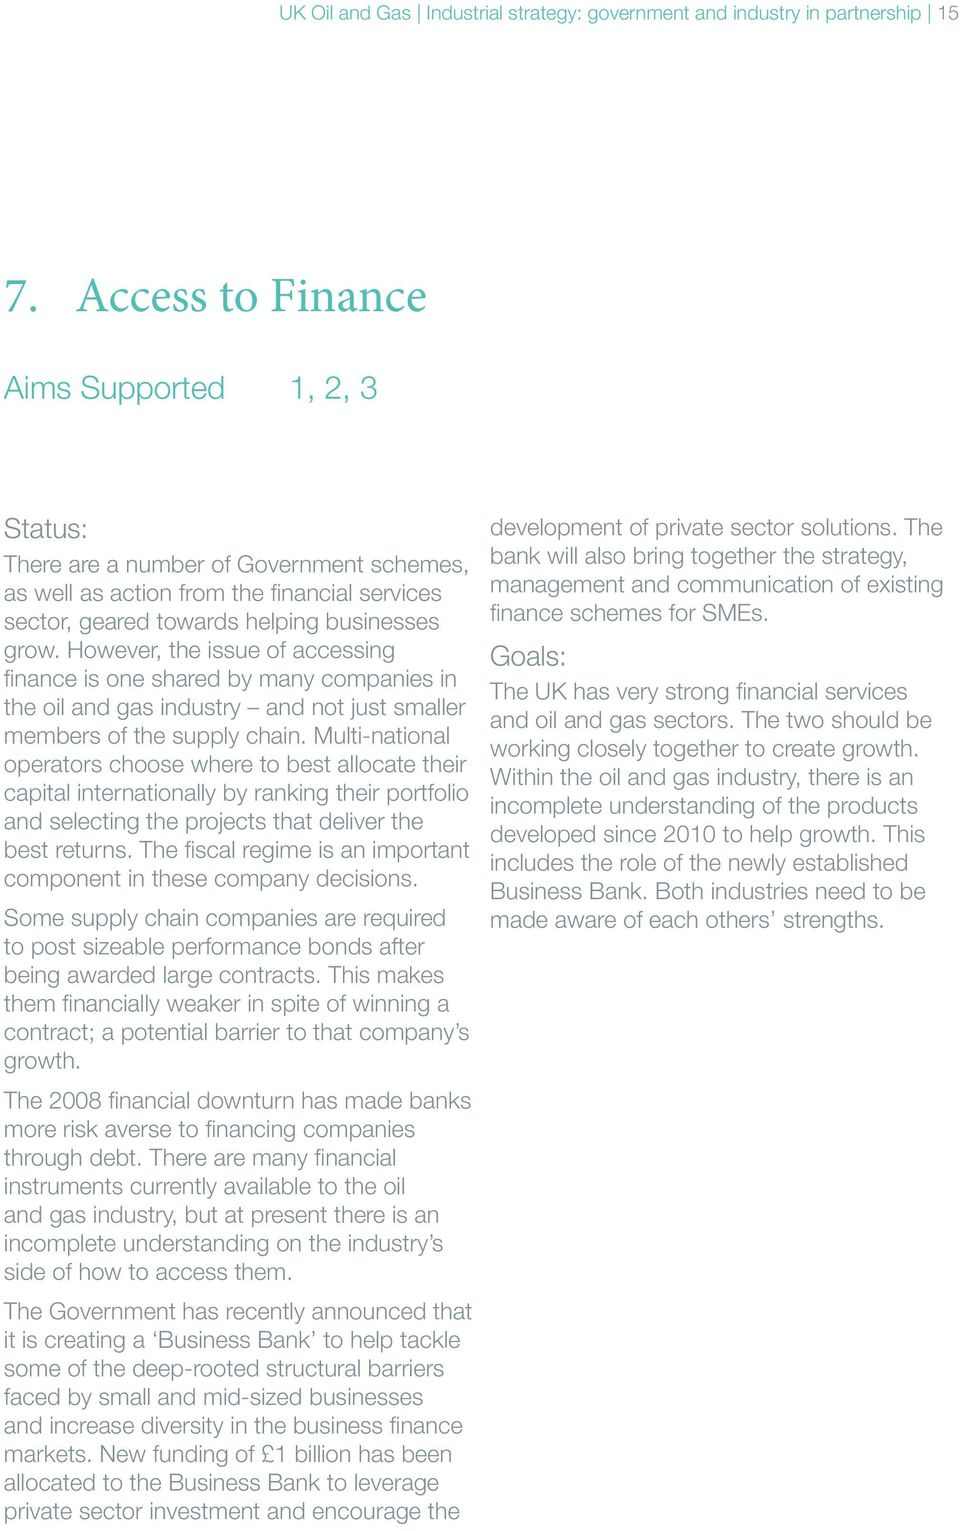 However, the issue of accessing finance is one shared by many companies in the oil and gas industry and not just smaller members of the supply chain.